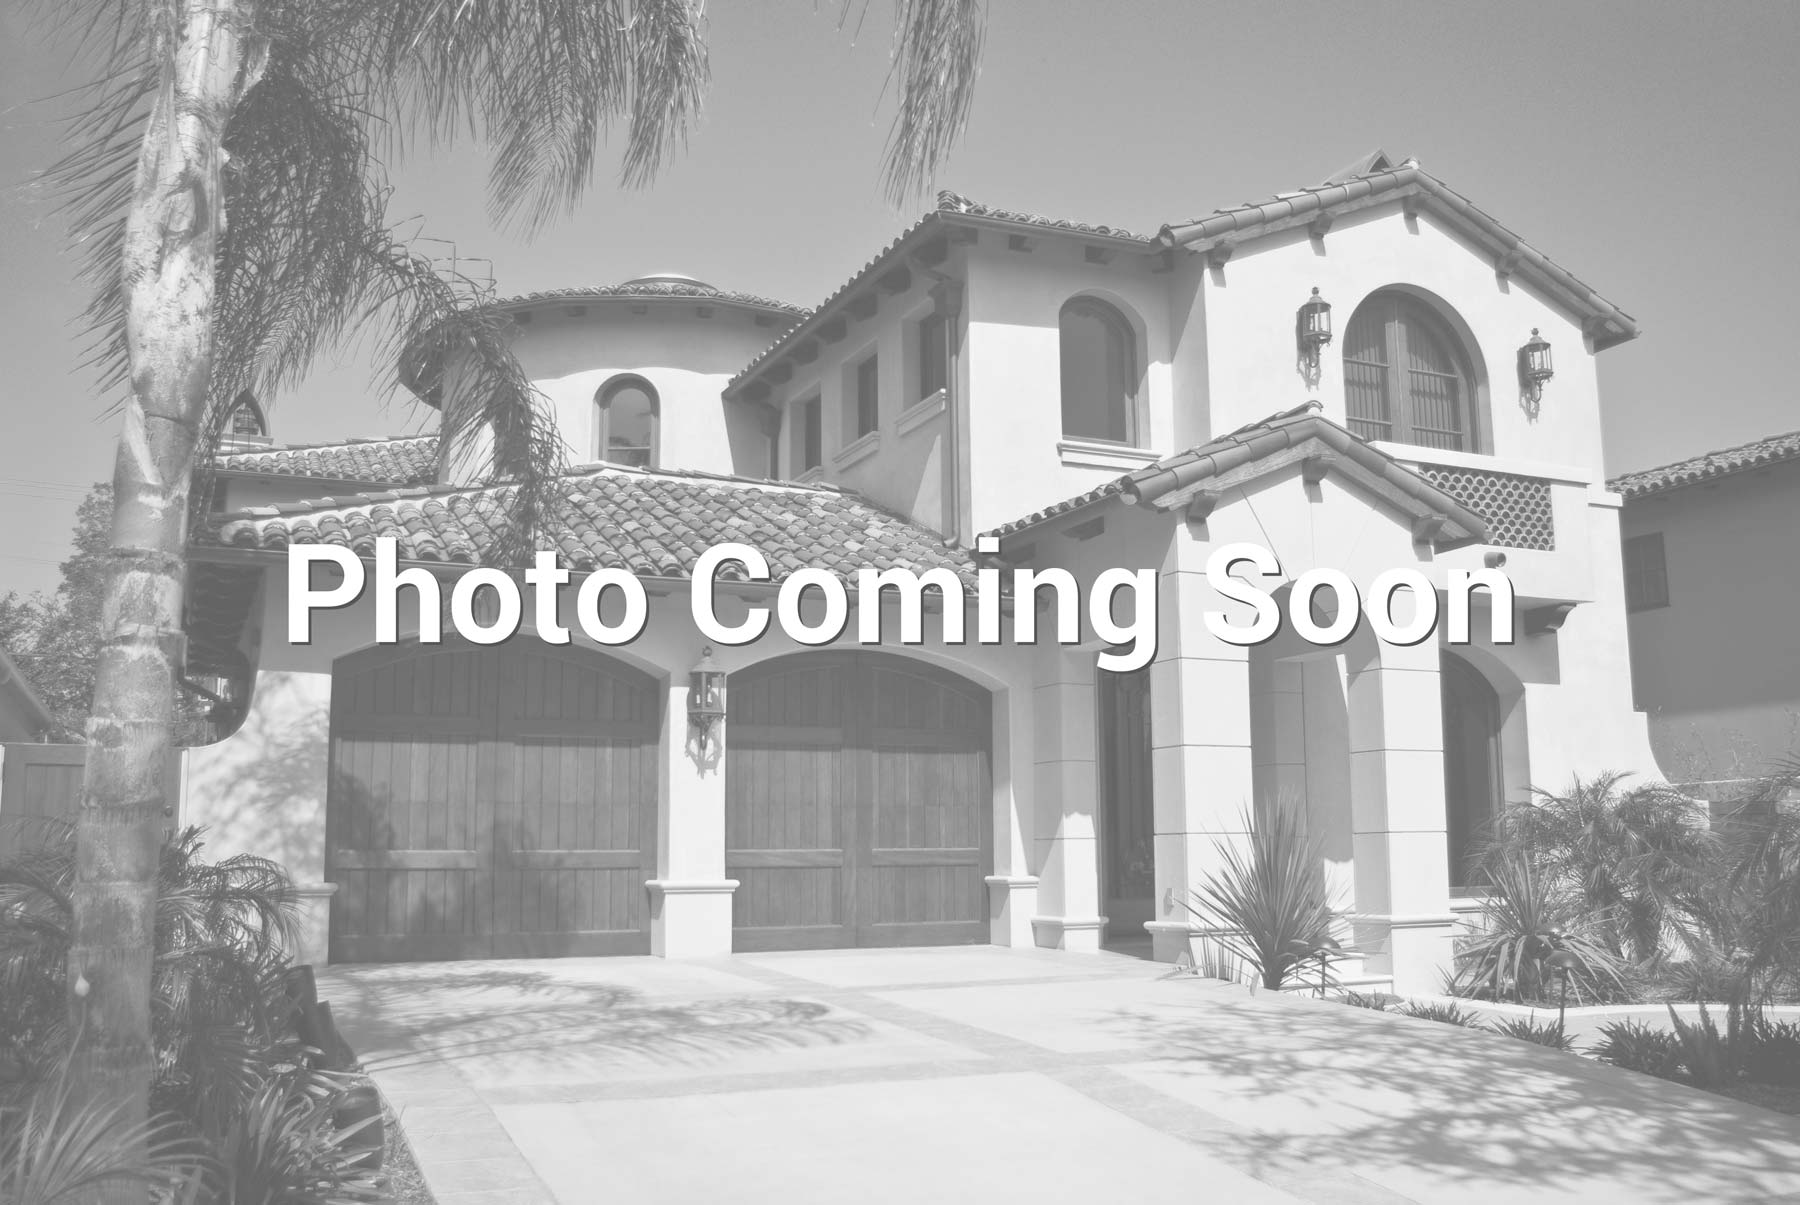 $549,994 - 4Br/3Ba - Home for Sale in Desert Ridge Super Block 7 North Parcel 6 7 8 Repl, Phoenix